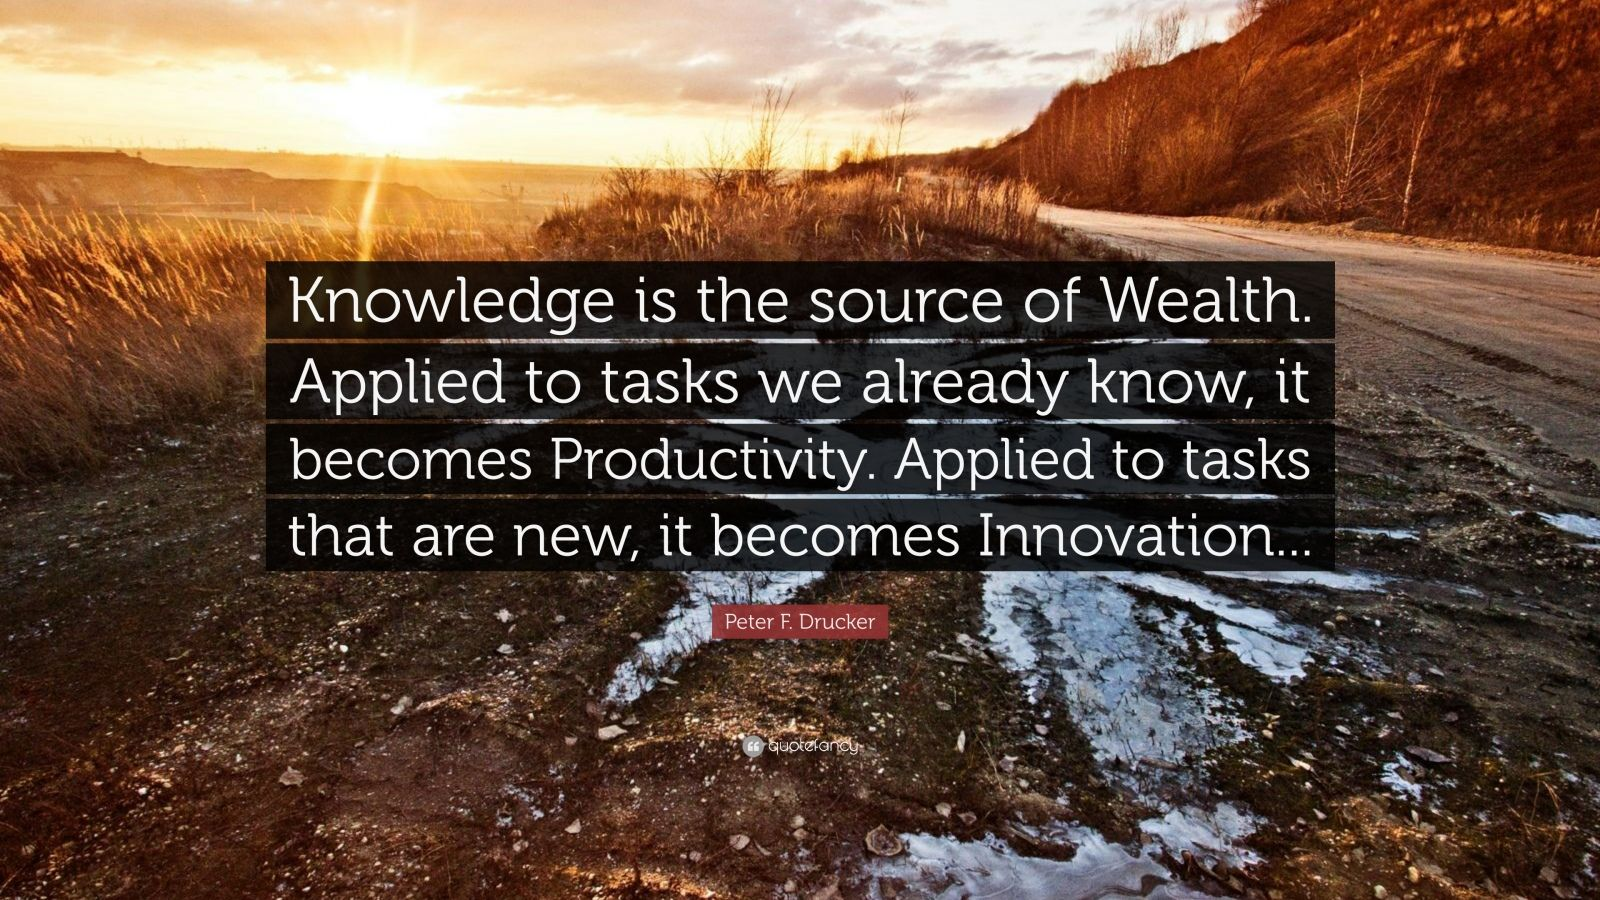 """Peter F. Drucker Quote: """"Knowledge is the source of Wealth. Applied to tasks we already know, it becomes Productivity. Applied to tasks that are new, it becomes Innovation..."""""""